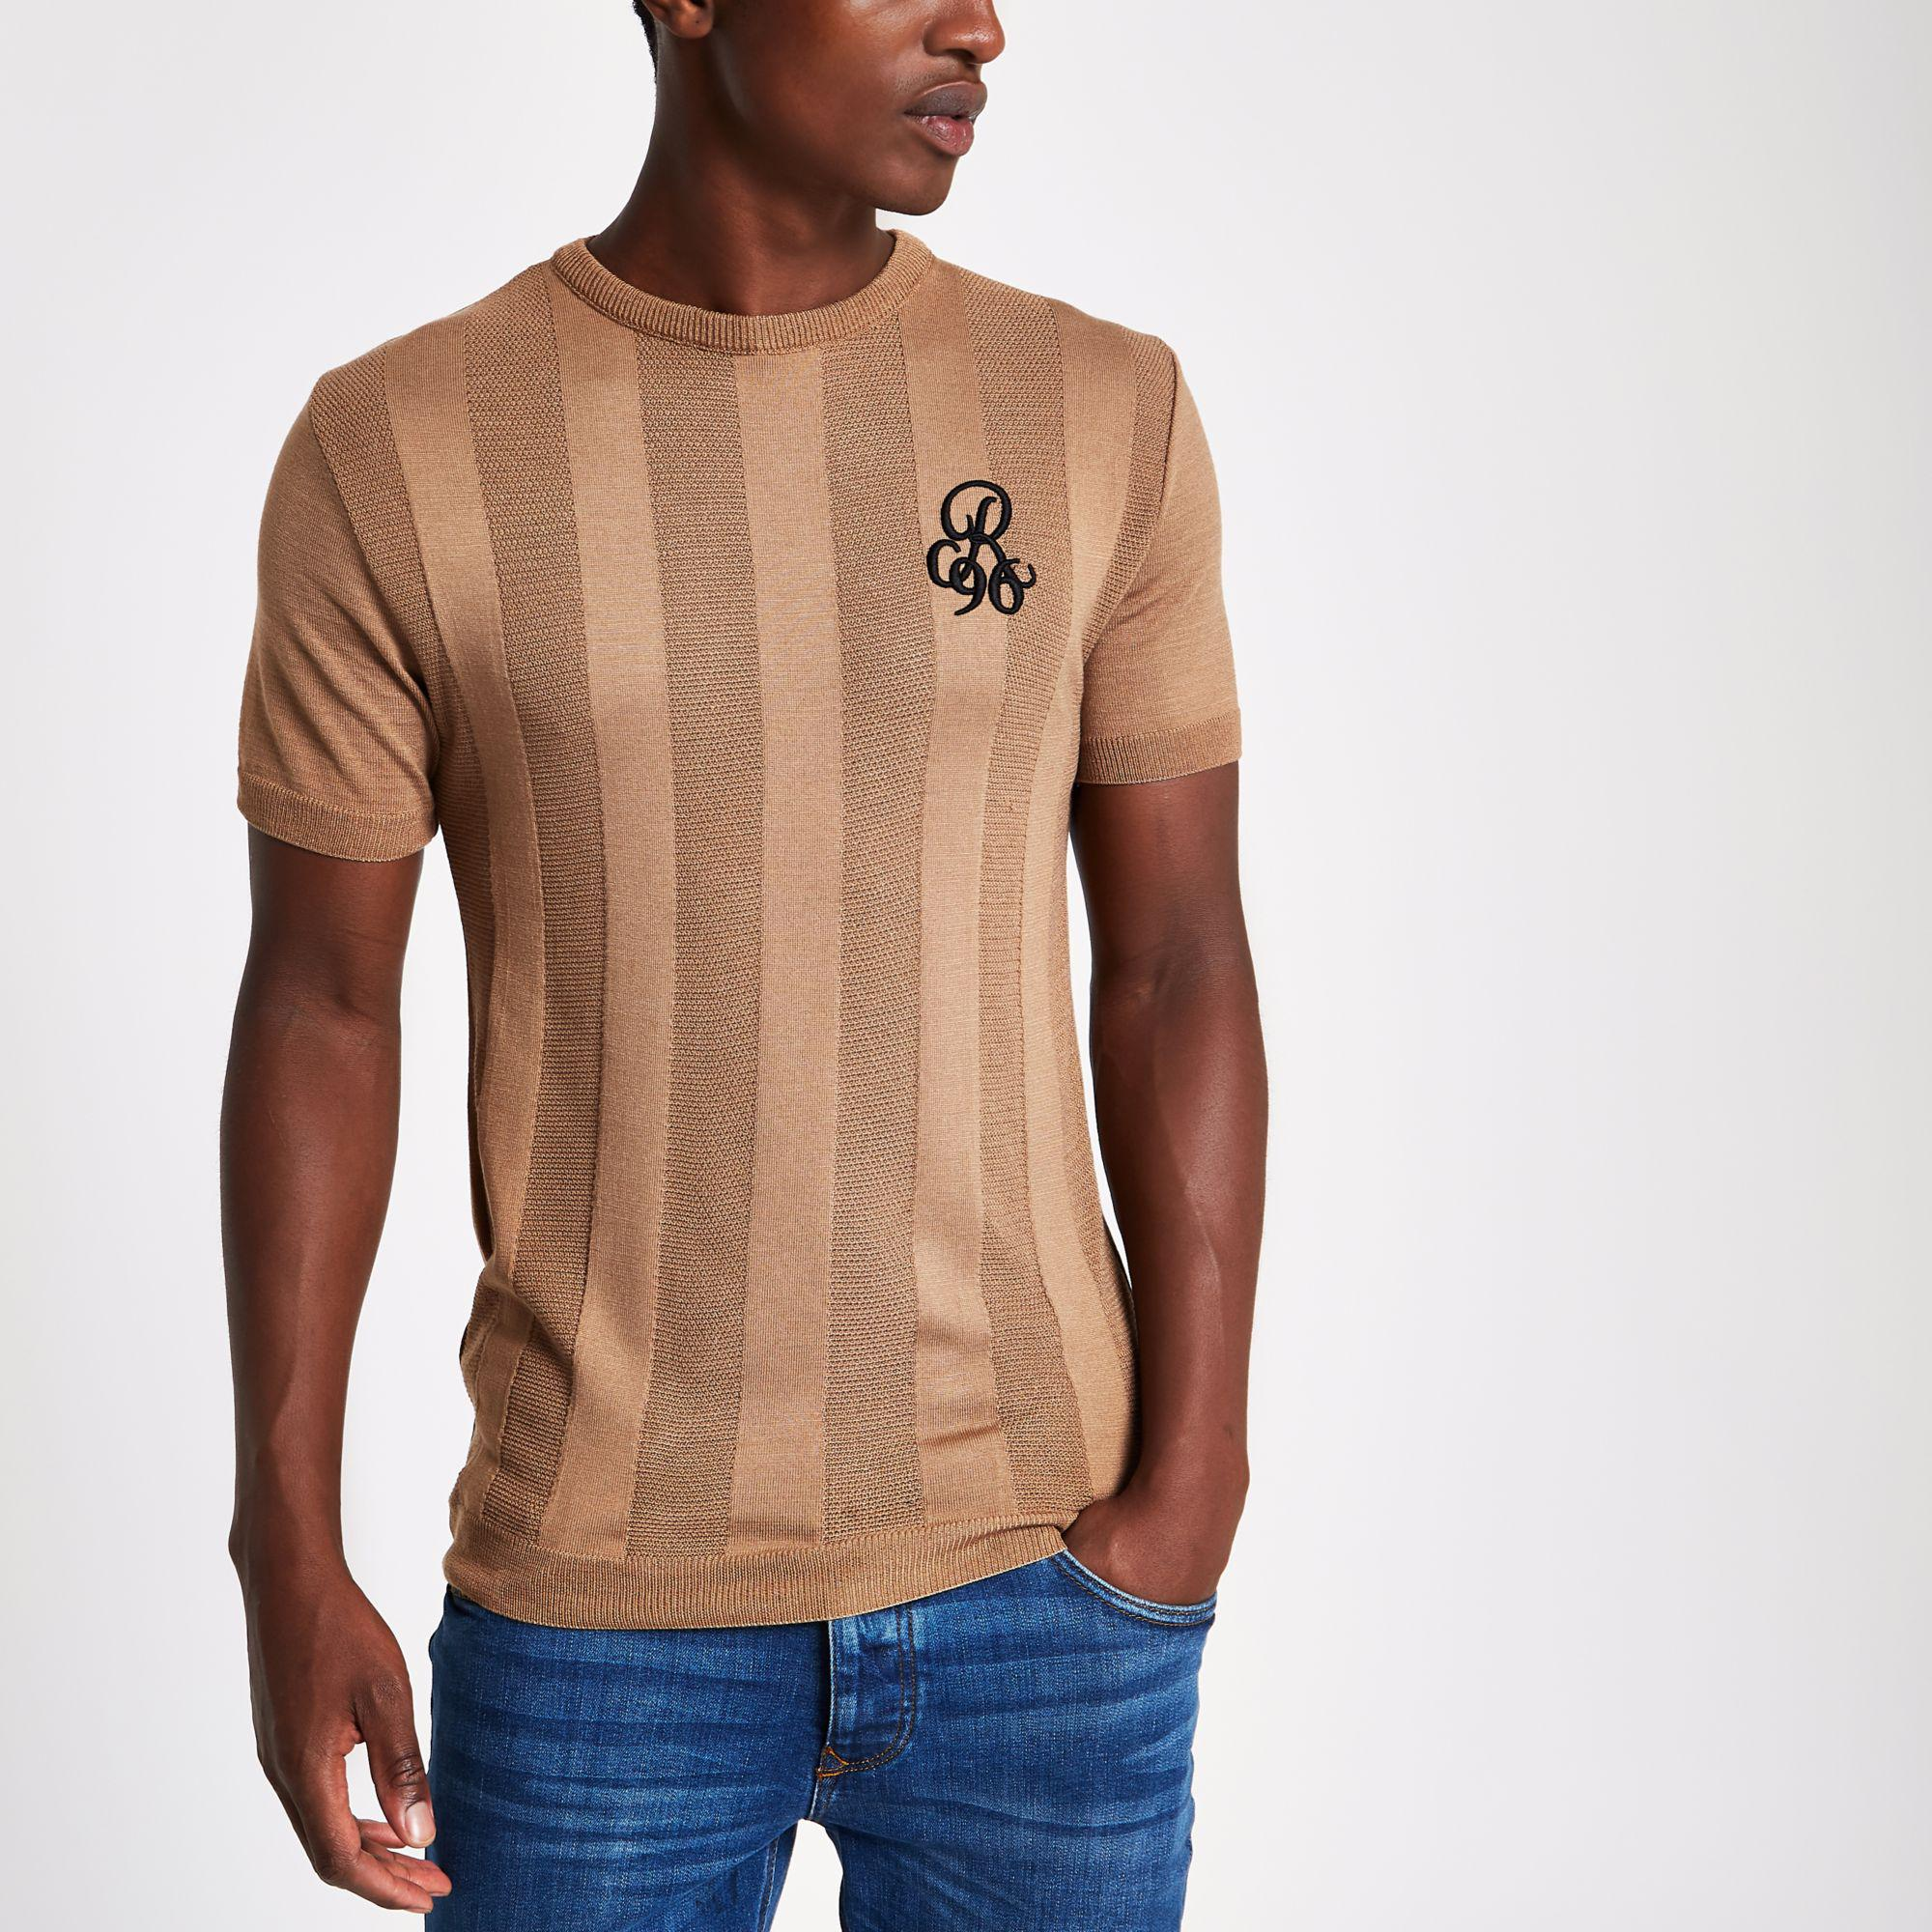 4cc85d0fa River Island Light R96 Muscle Fit T-shirt in Brown for Men - Lyst